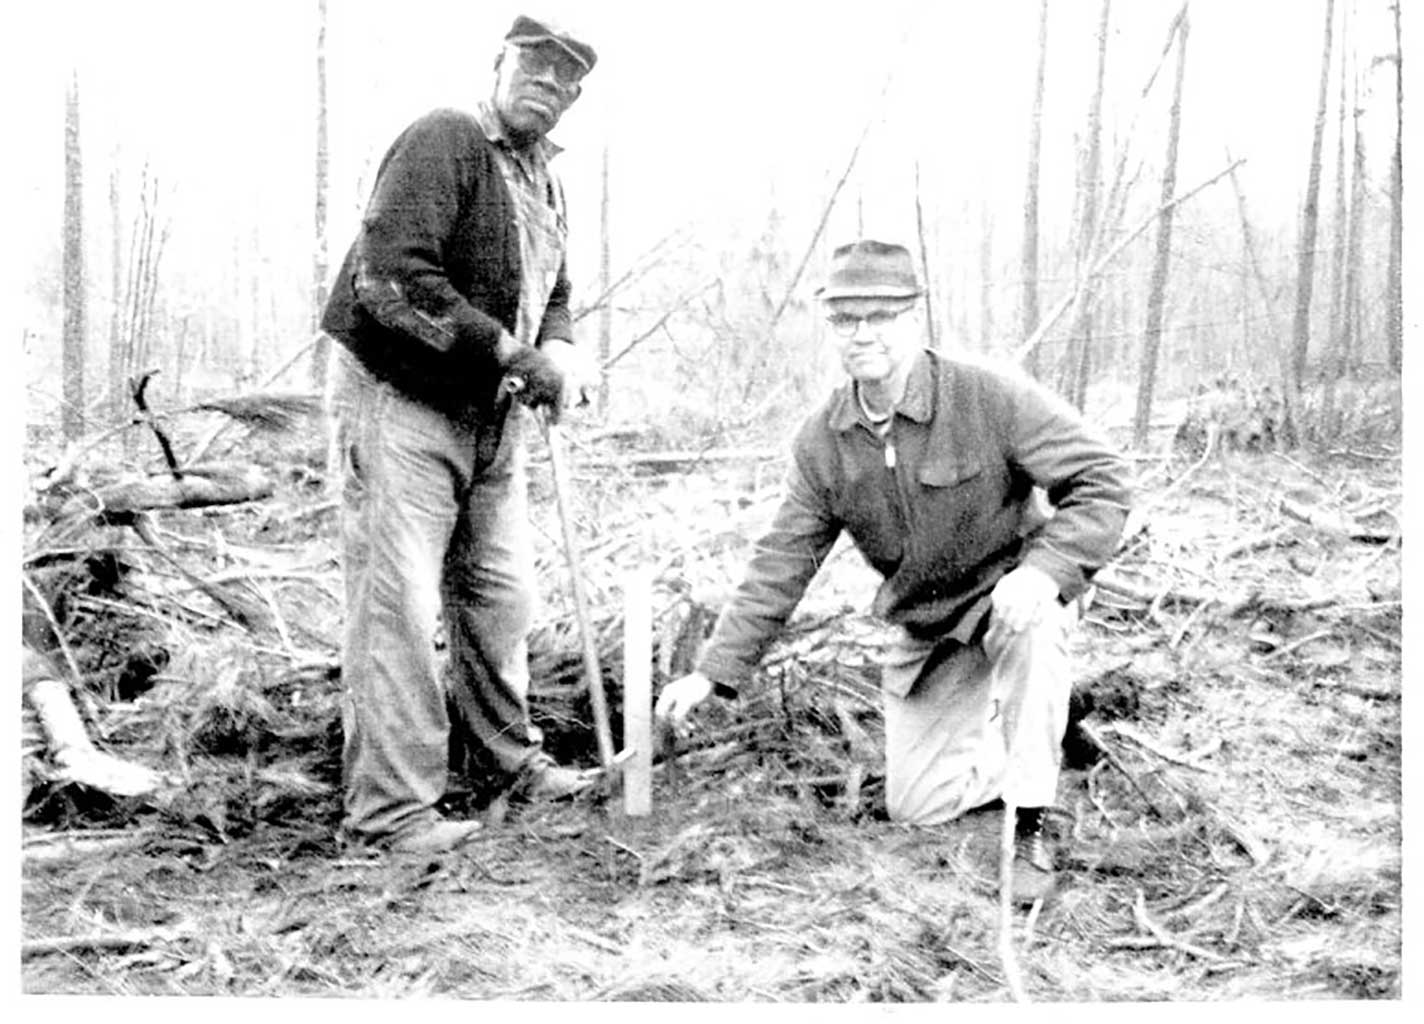 willie-robinson-and-stokes-kirk-planting-number-1-million-and-1-seedling-img325